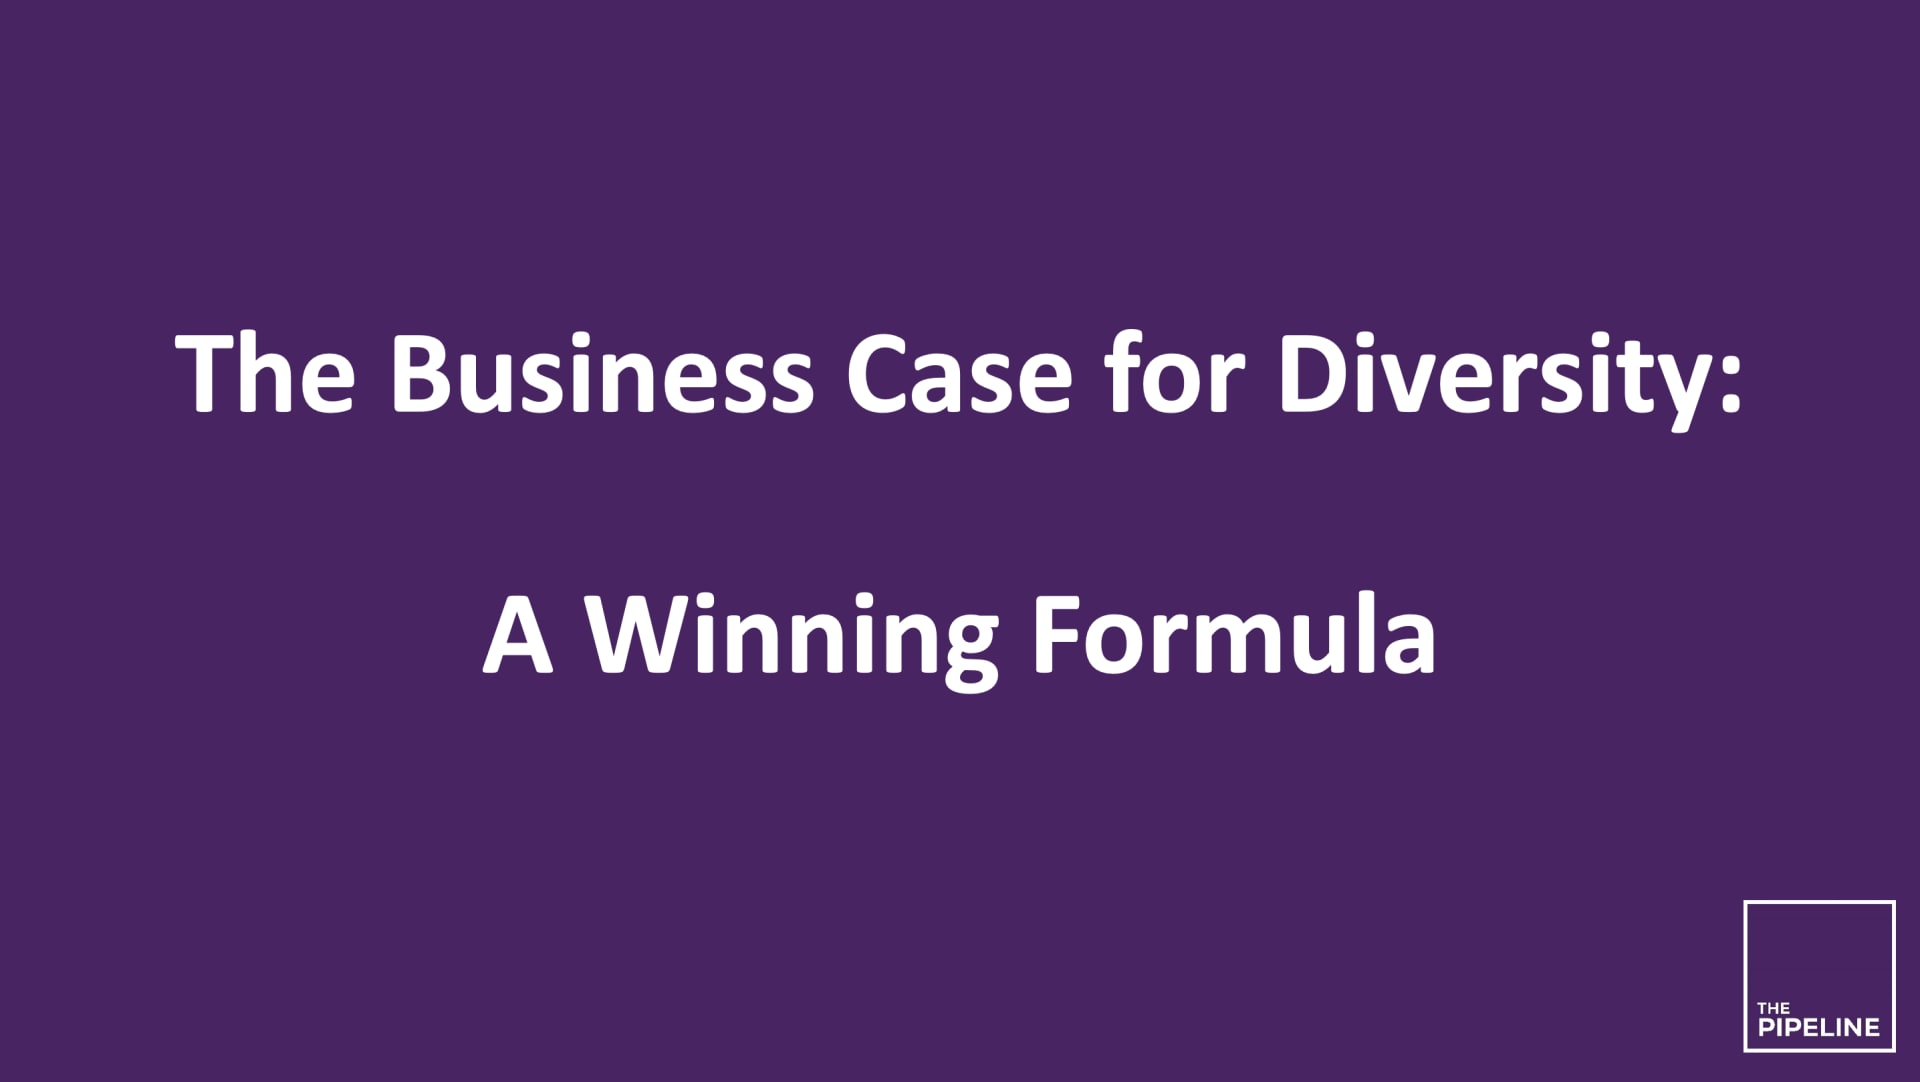 The Business Case For Diversity - Research Library